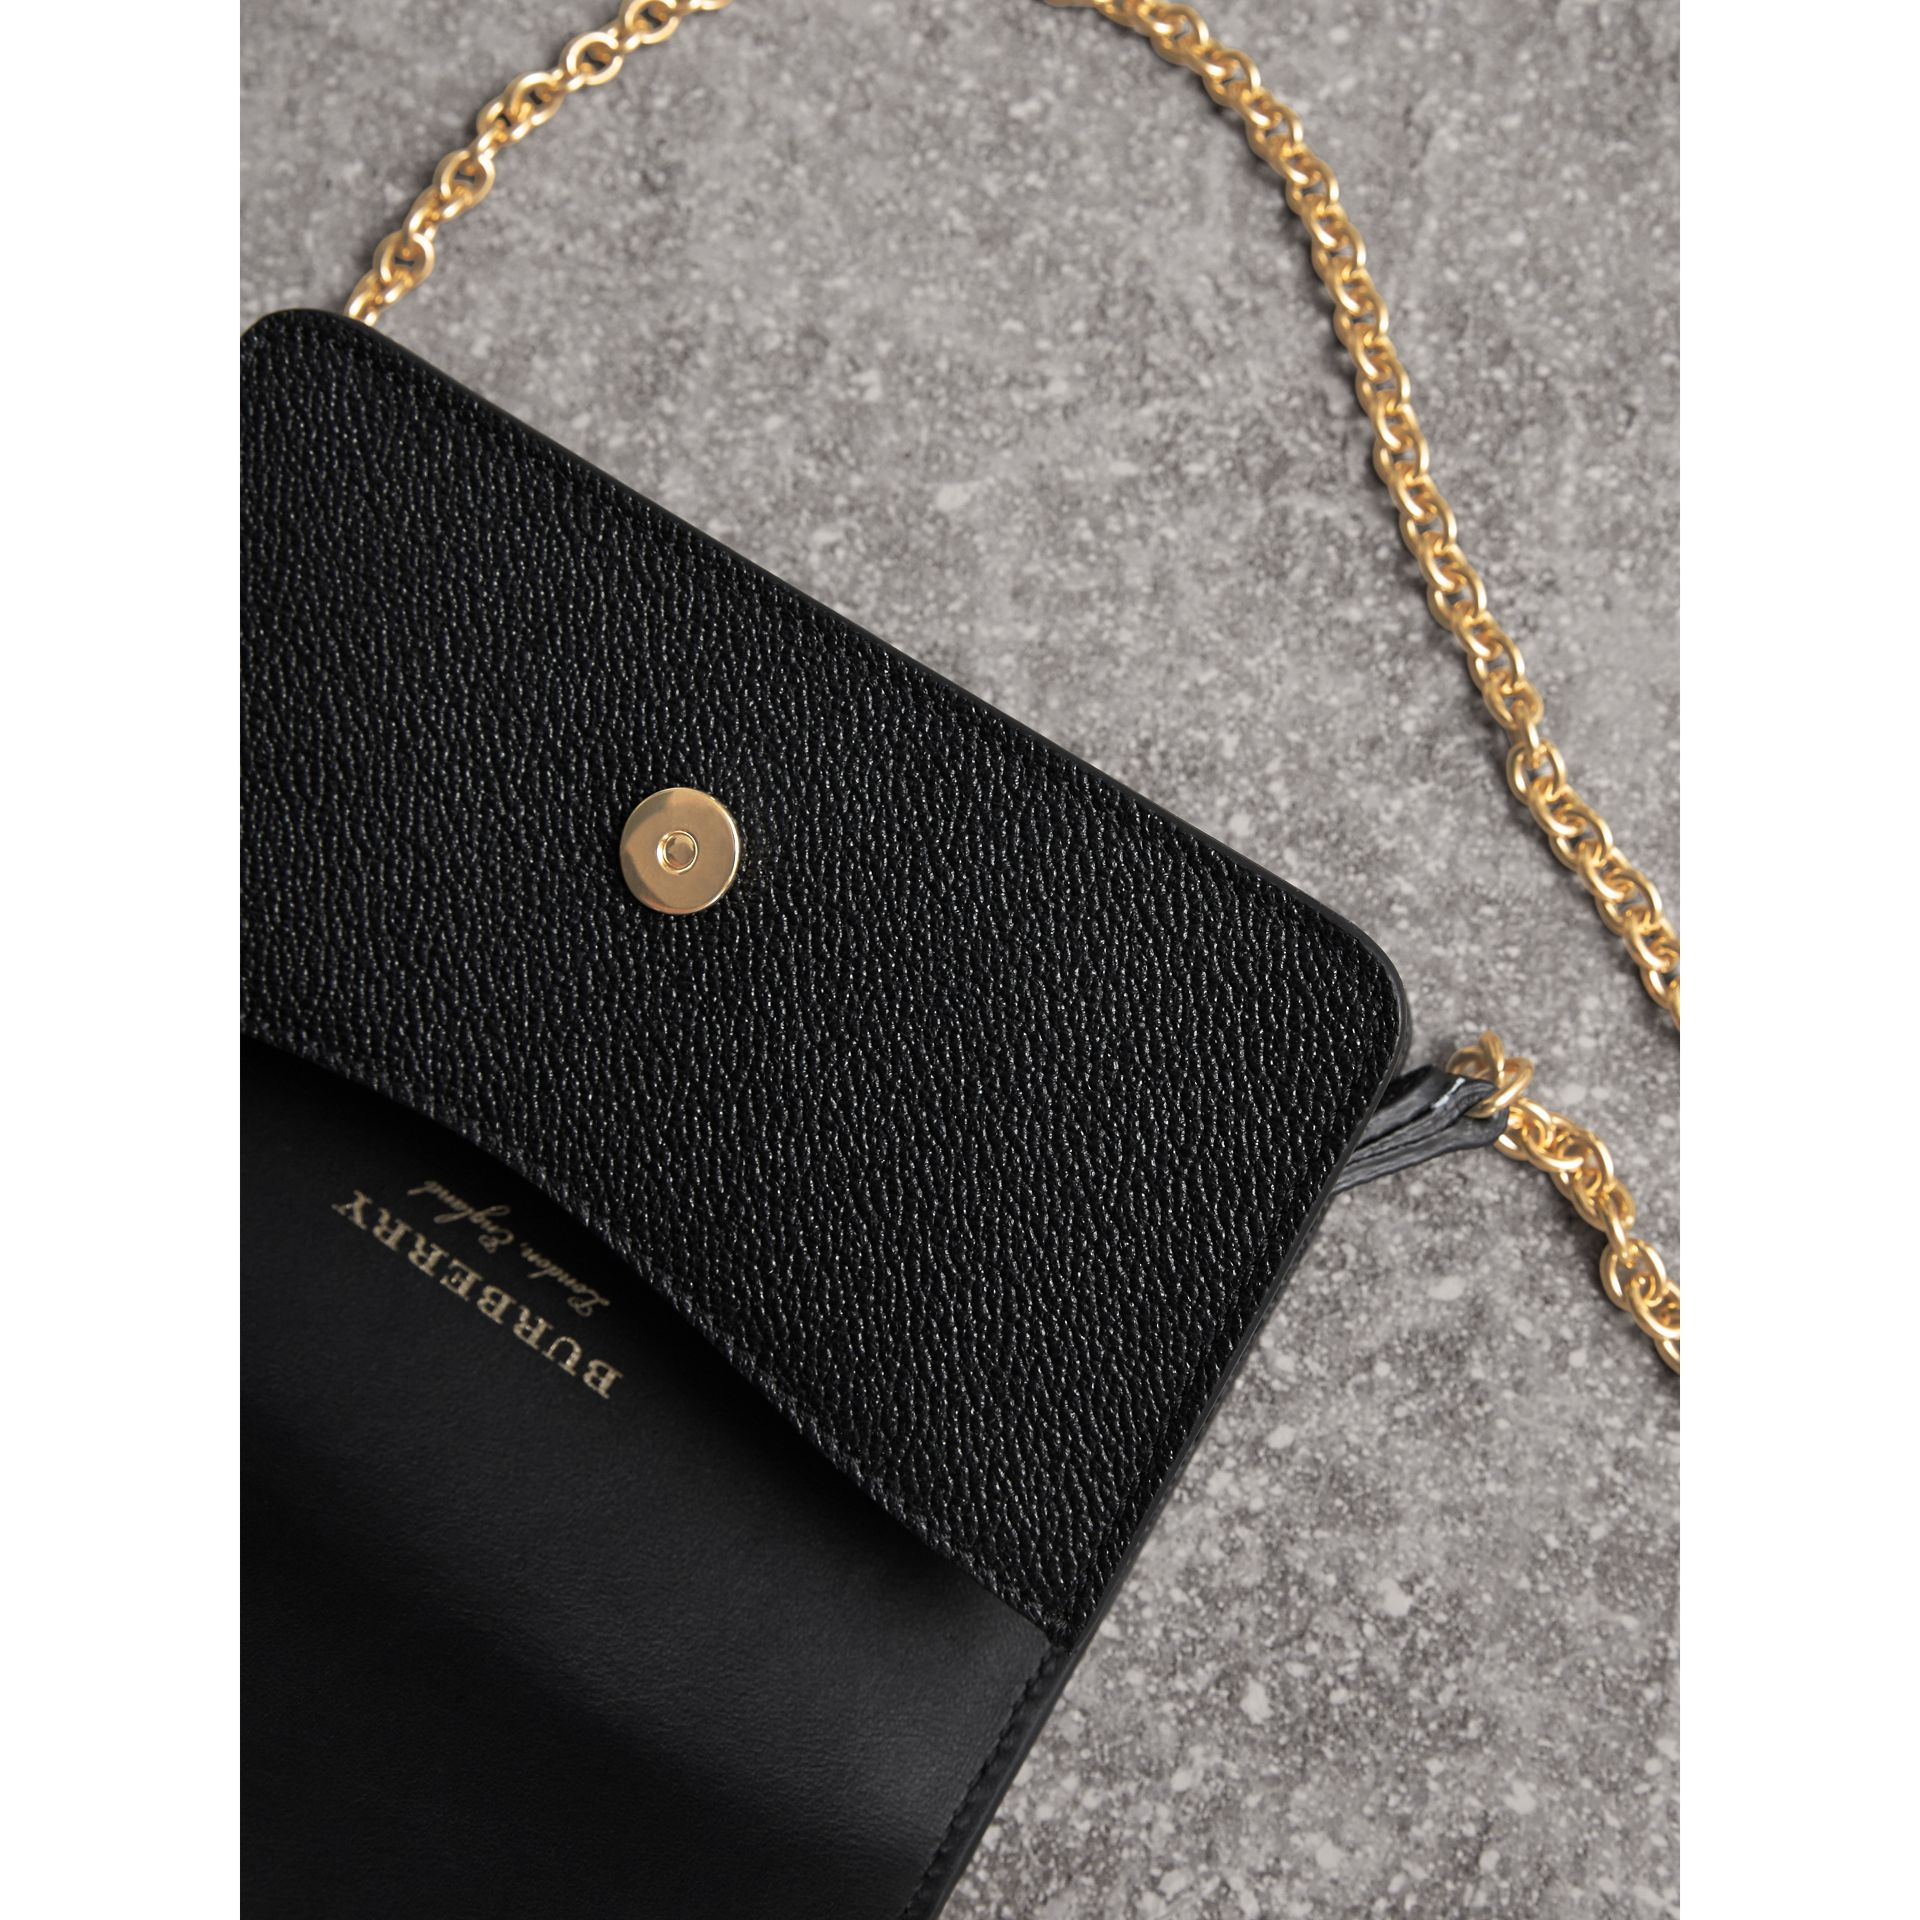 Mini sac The Buckle en cuir grainé (Noir) - Femme | Burberry - photo de la galerie 6